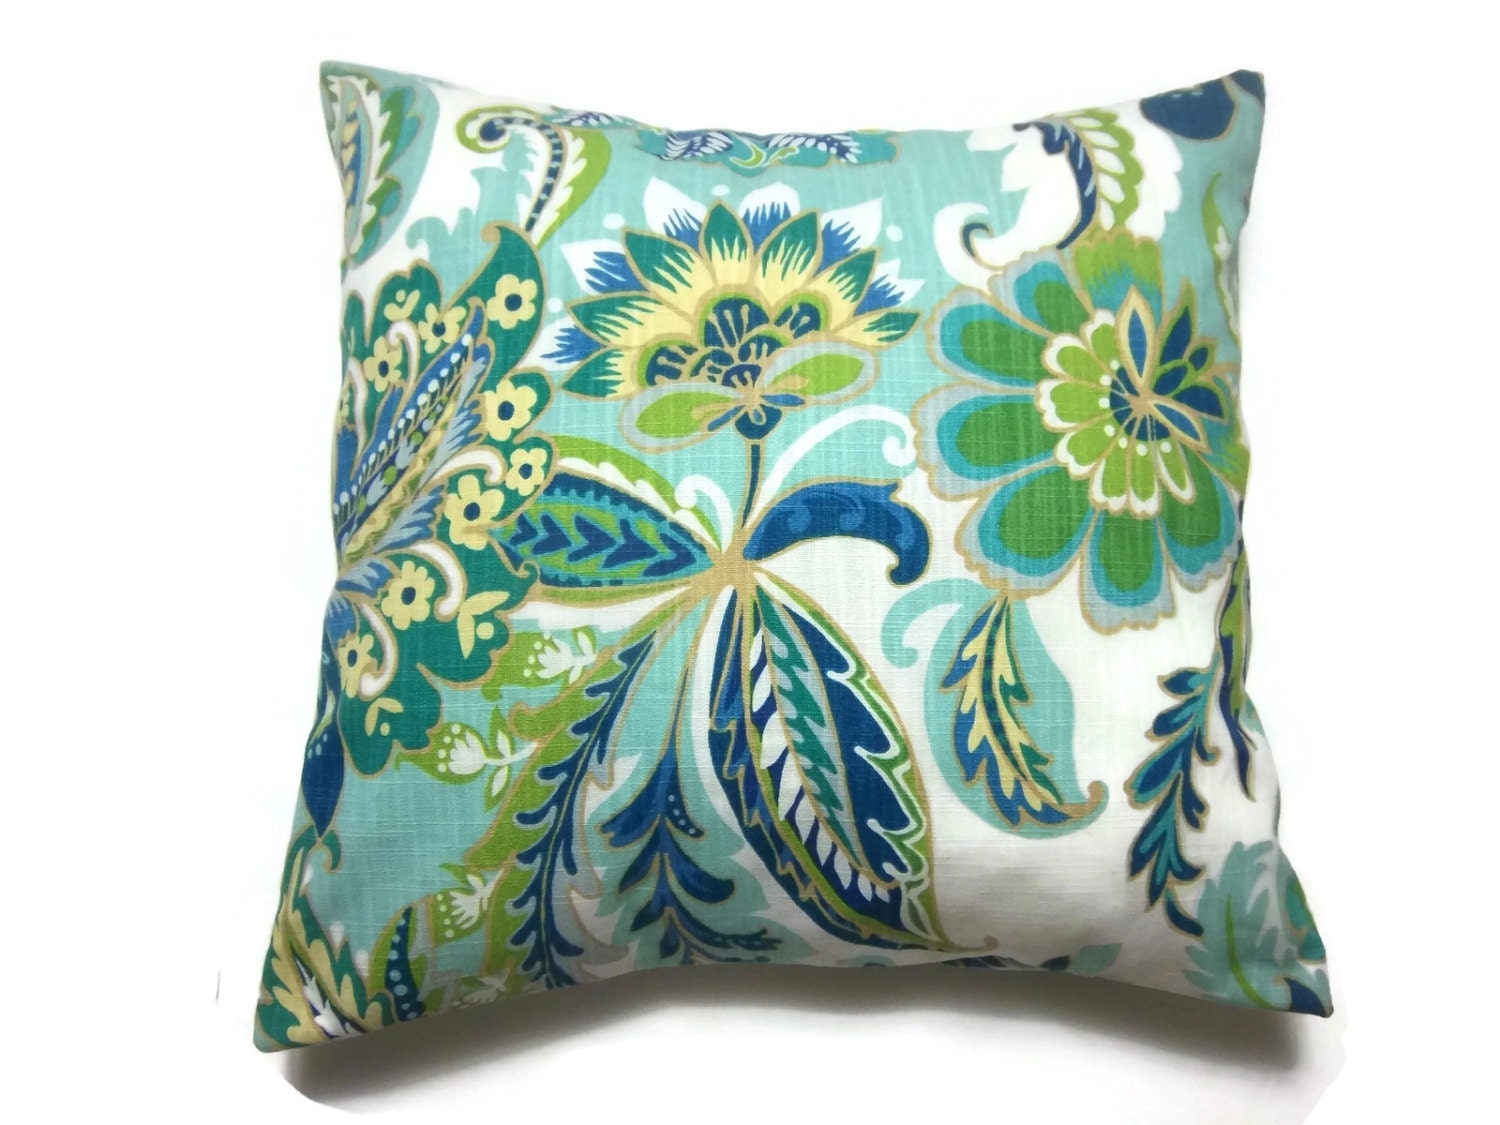 Yellow Green Decorative Pillows : Decorative Pillow Cover Shades of Blue Green Yellow White